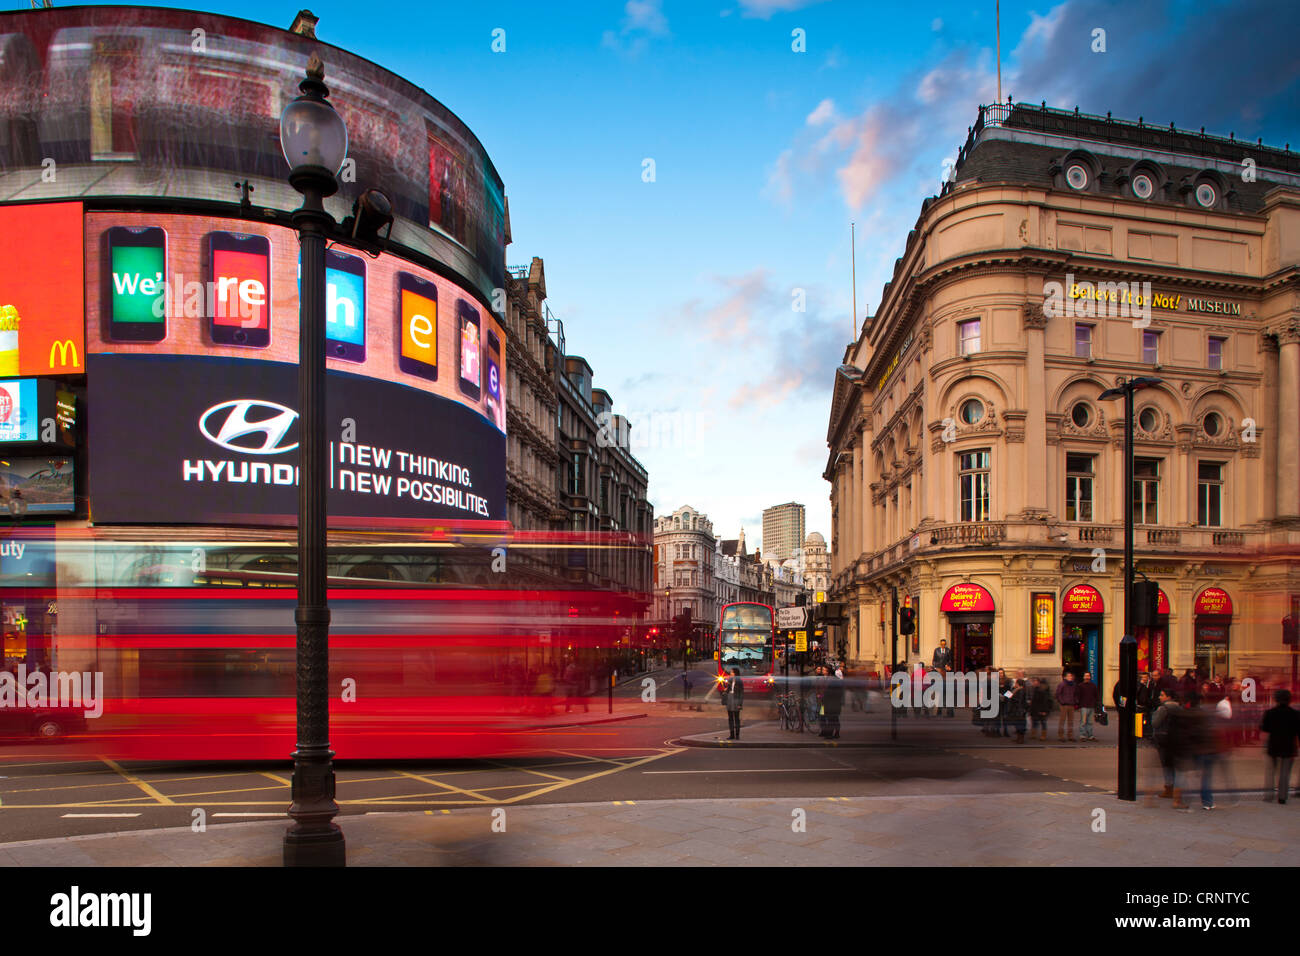 Red London double decker bus travelling through Piccadilly Circus in London's West End. - Stock Image